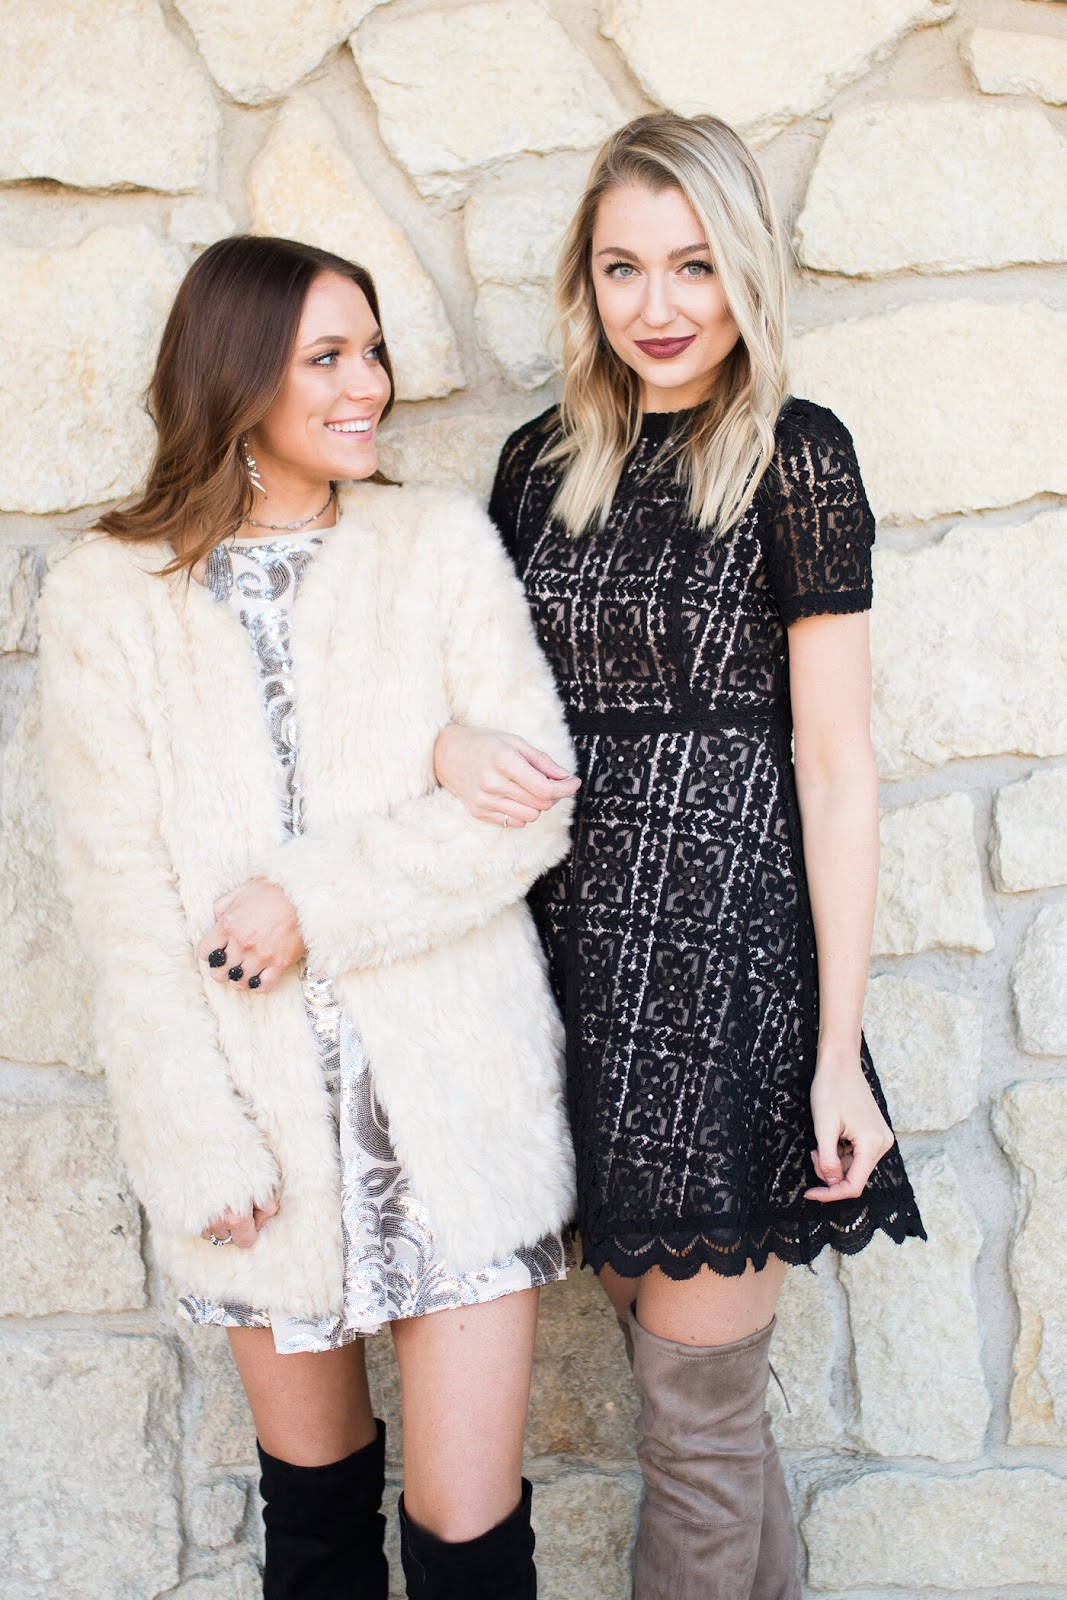 Dressy holiday party or winter wedding